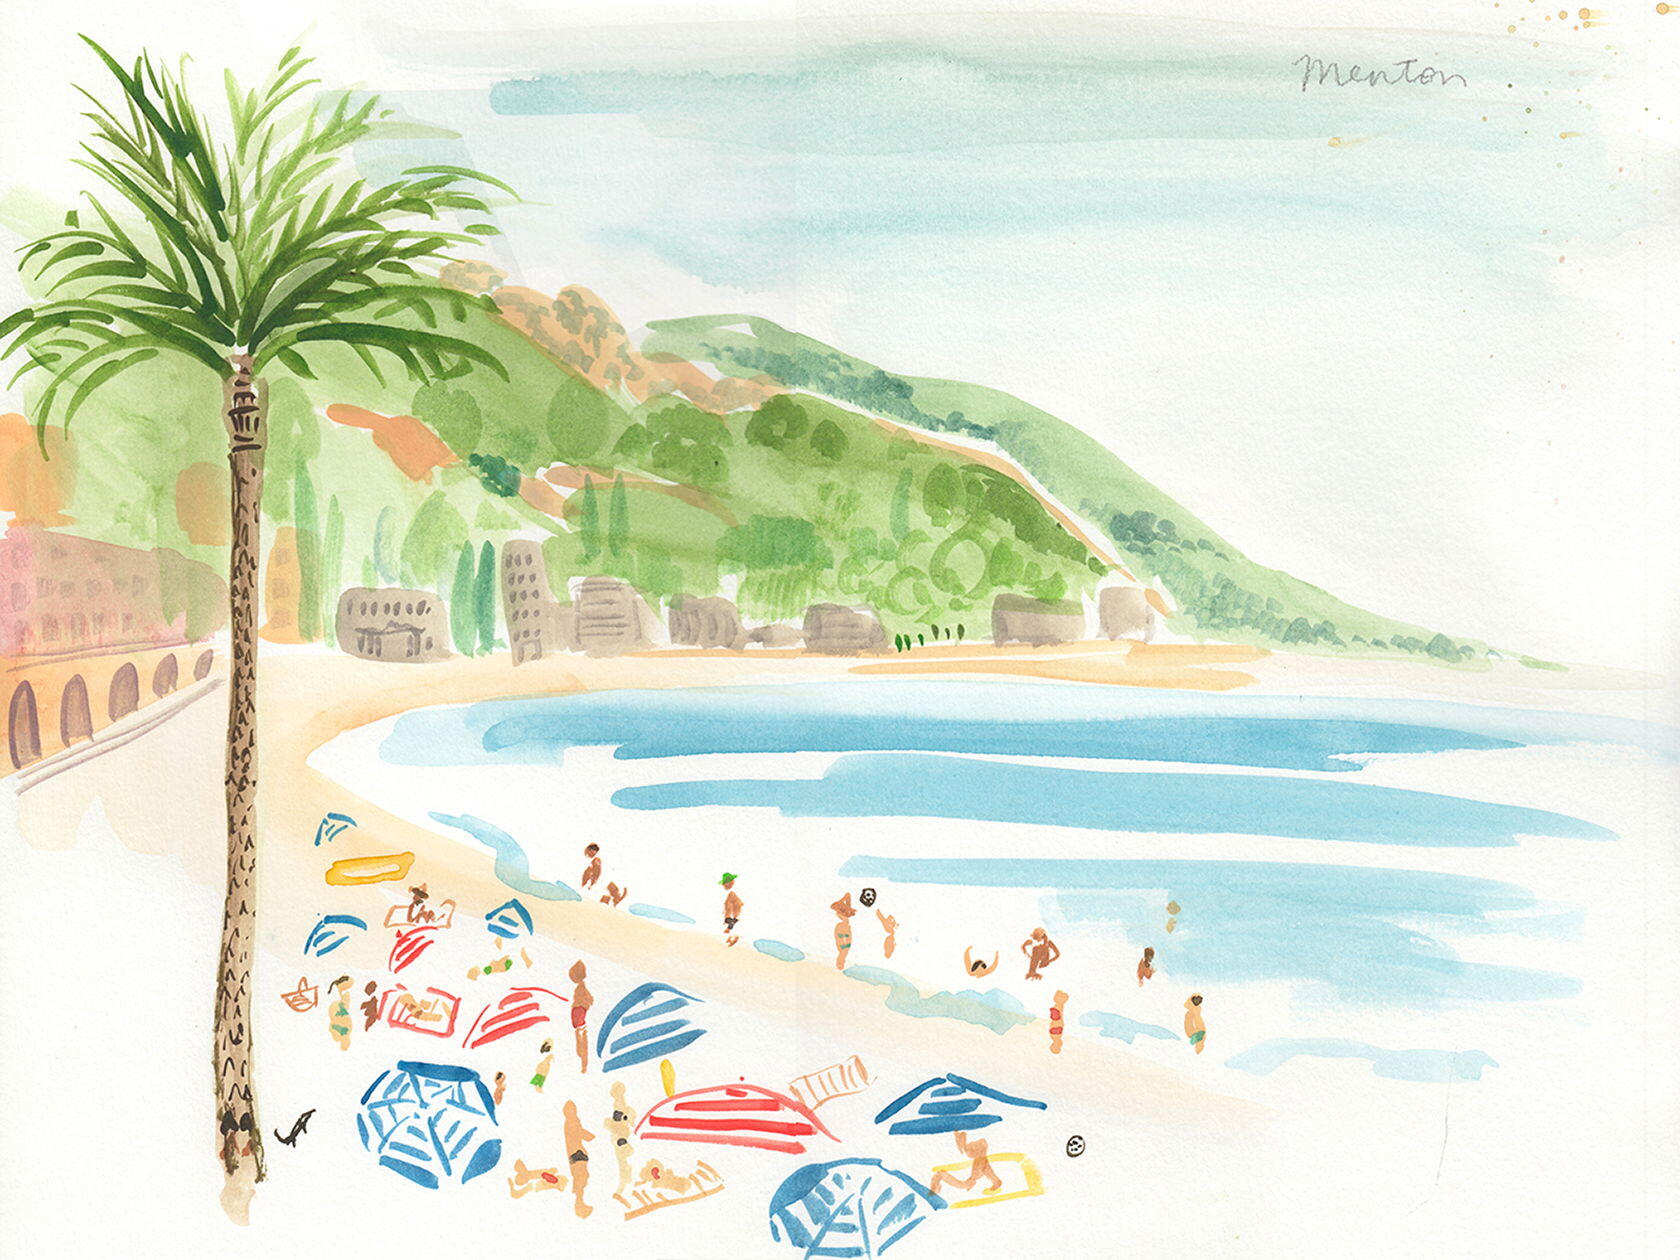 Virginia Johnson's Travels French Riviera menton beach scene